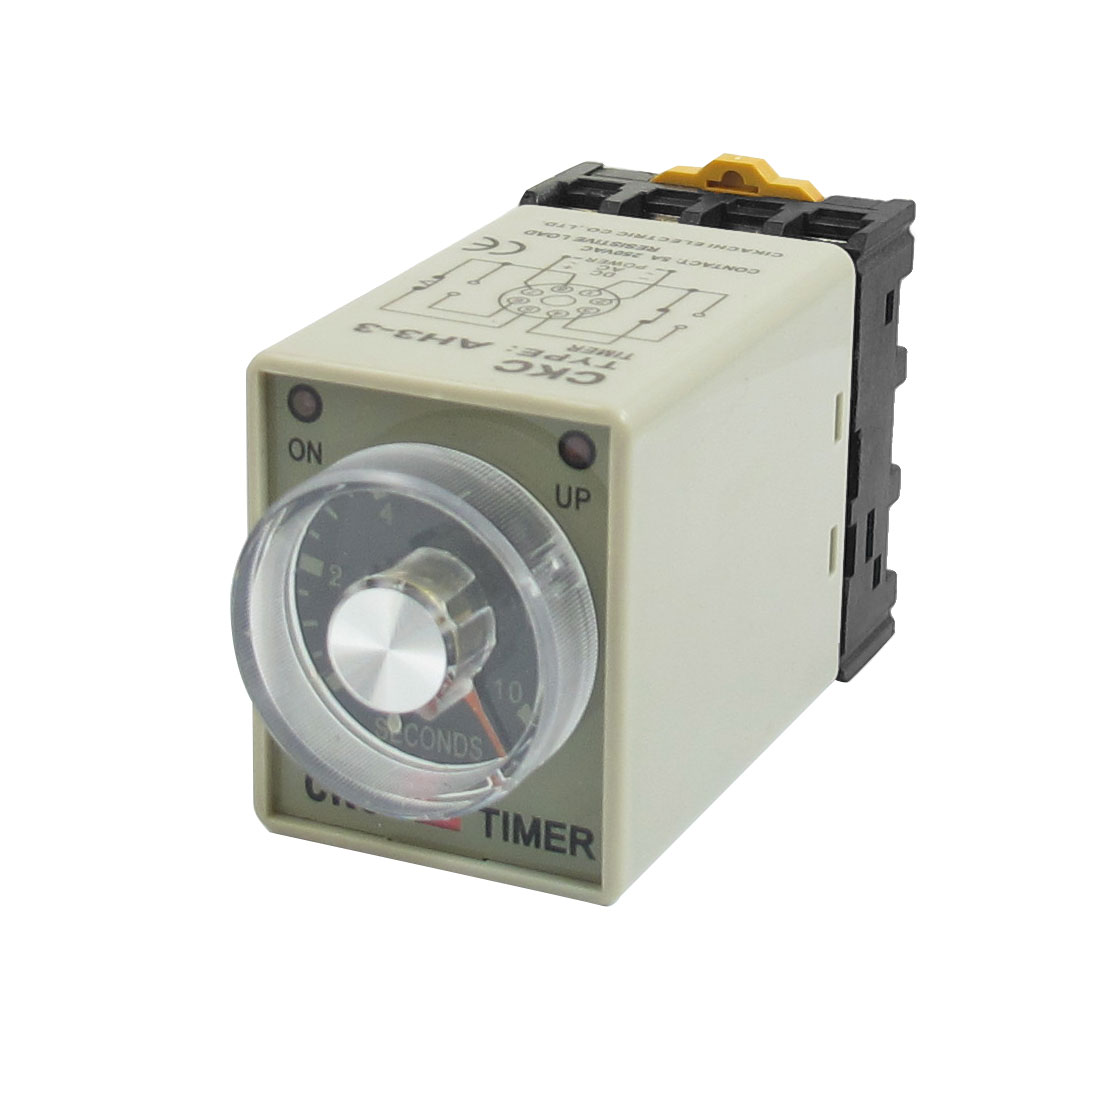 AH3-3 AC 110V 0 - 10 Seconds 8P Terminals Delay Timer Time Relay + Base